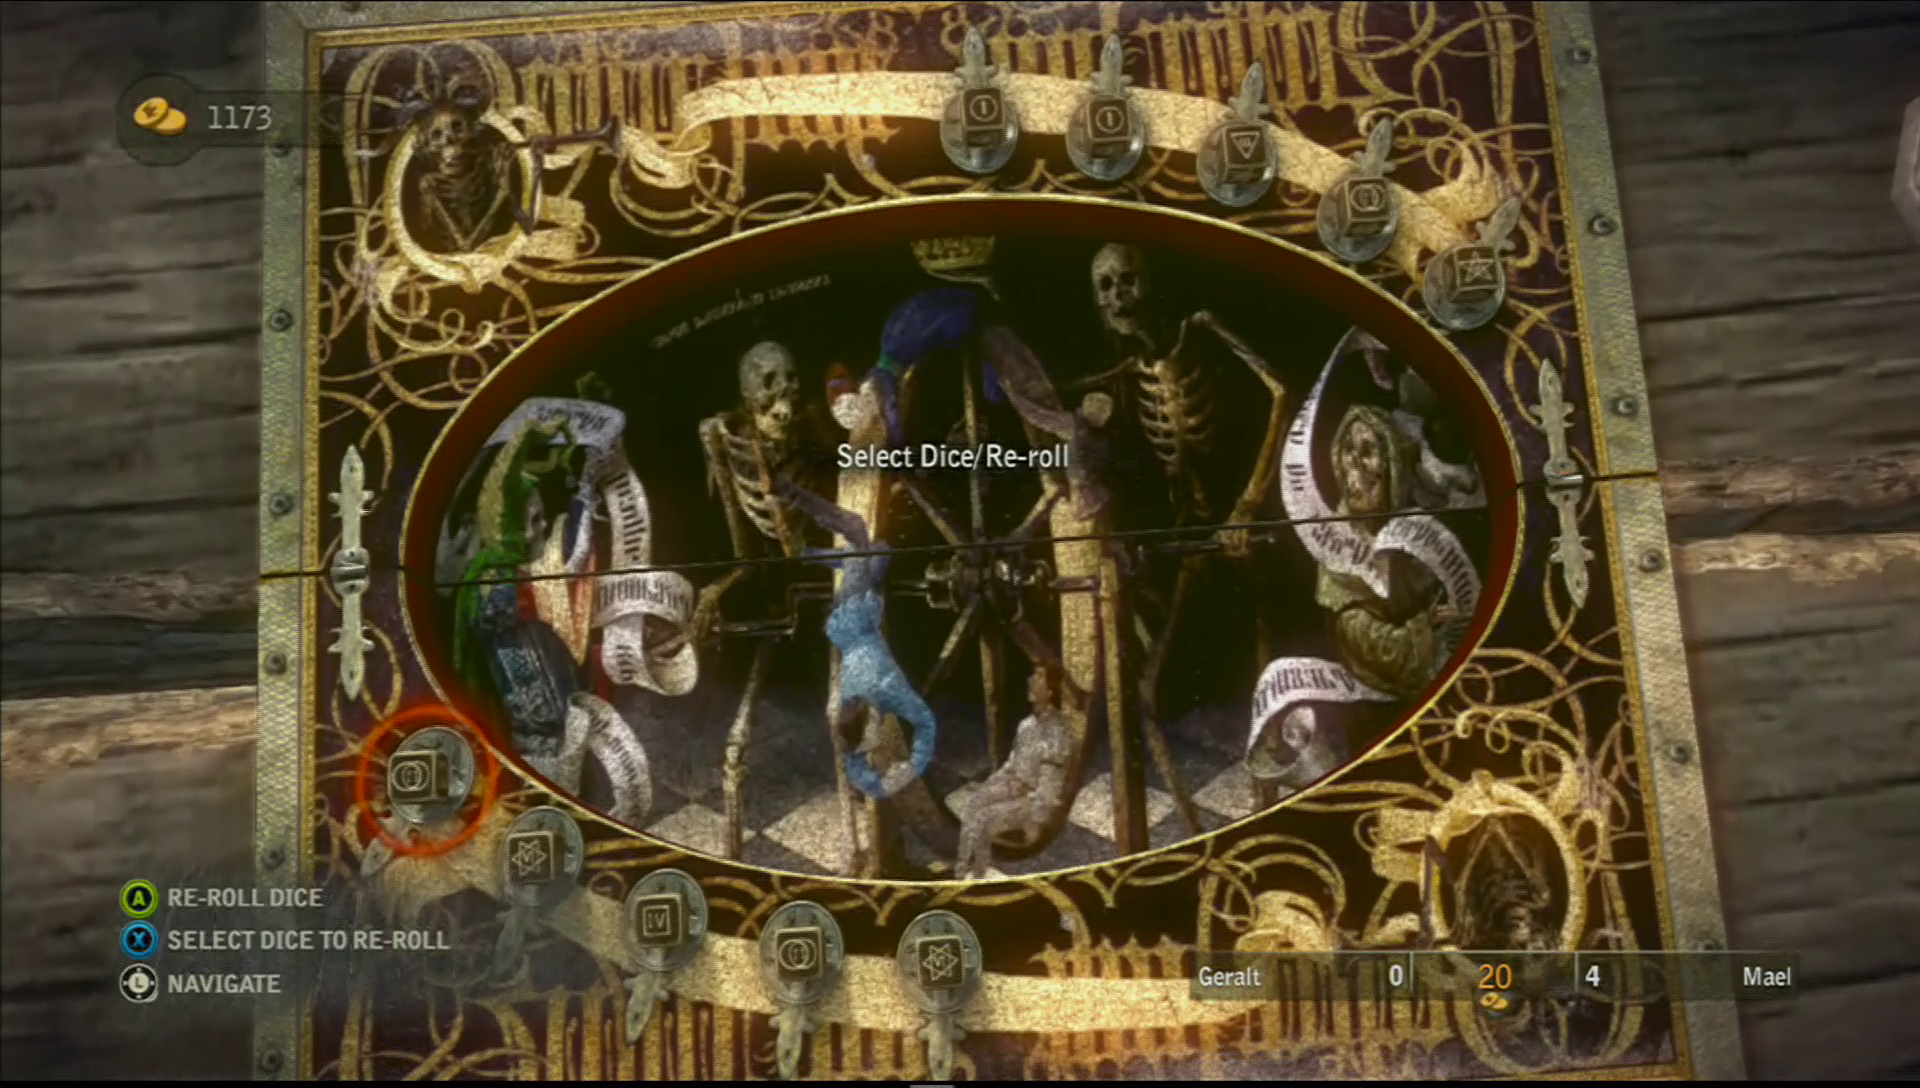 the witcher 2 dice game symbols that have an s